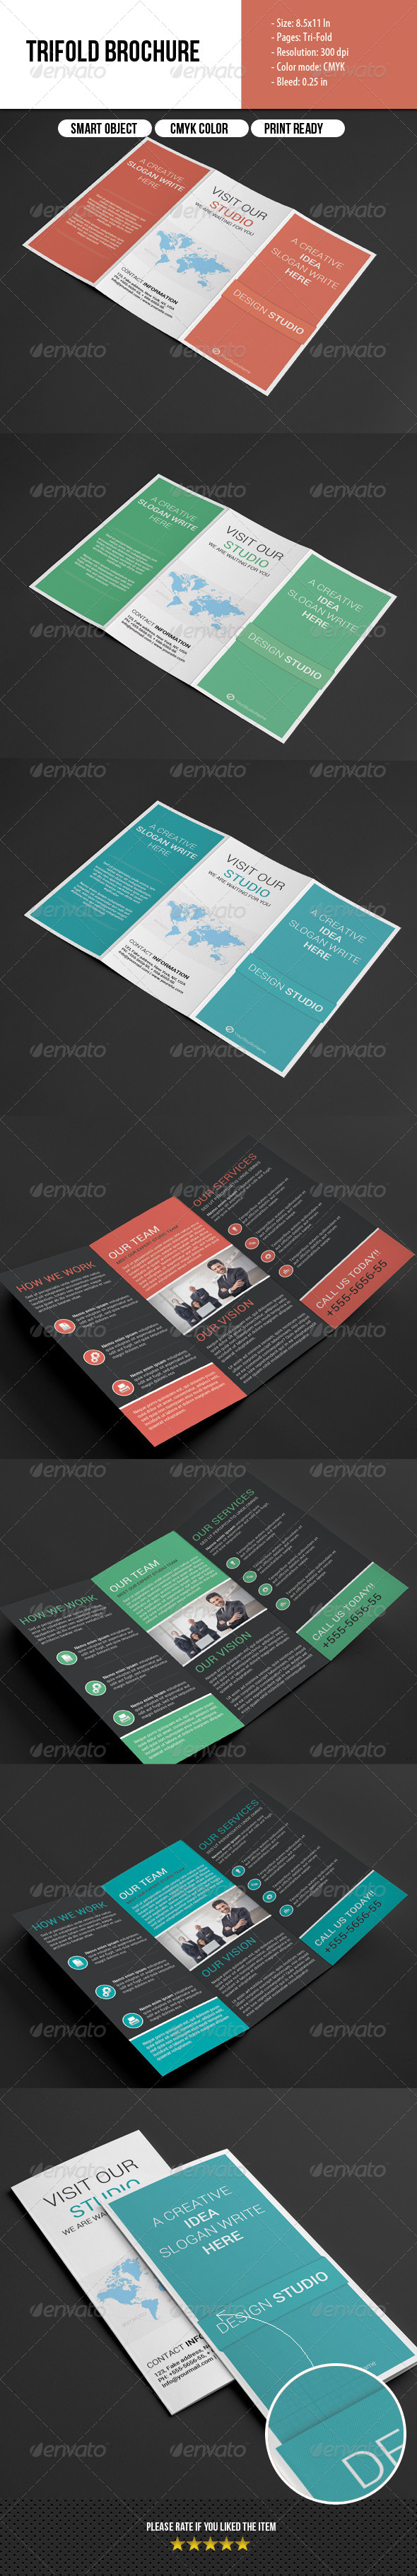 GraphicRiver Multipurpose Trifold Brochure 6875849